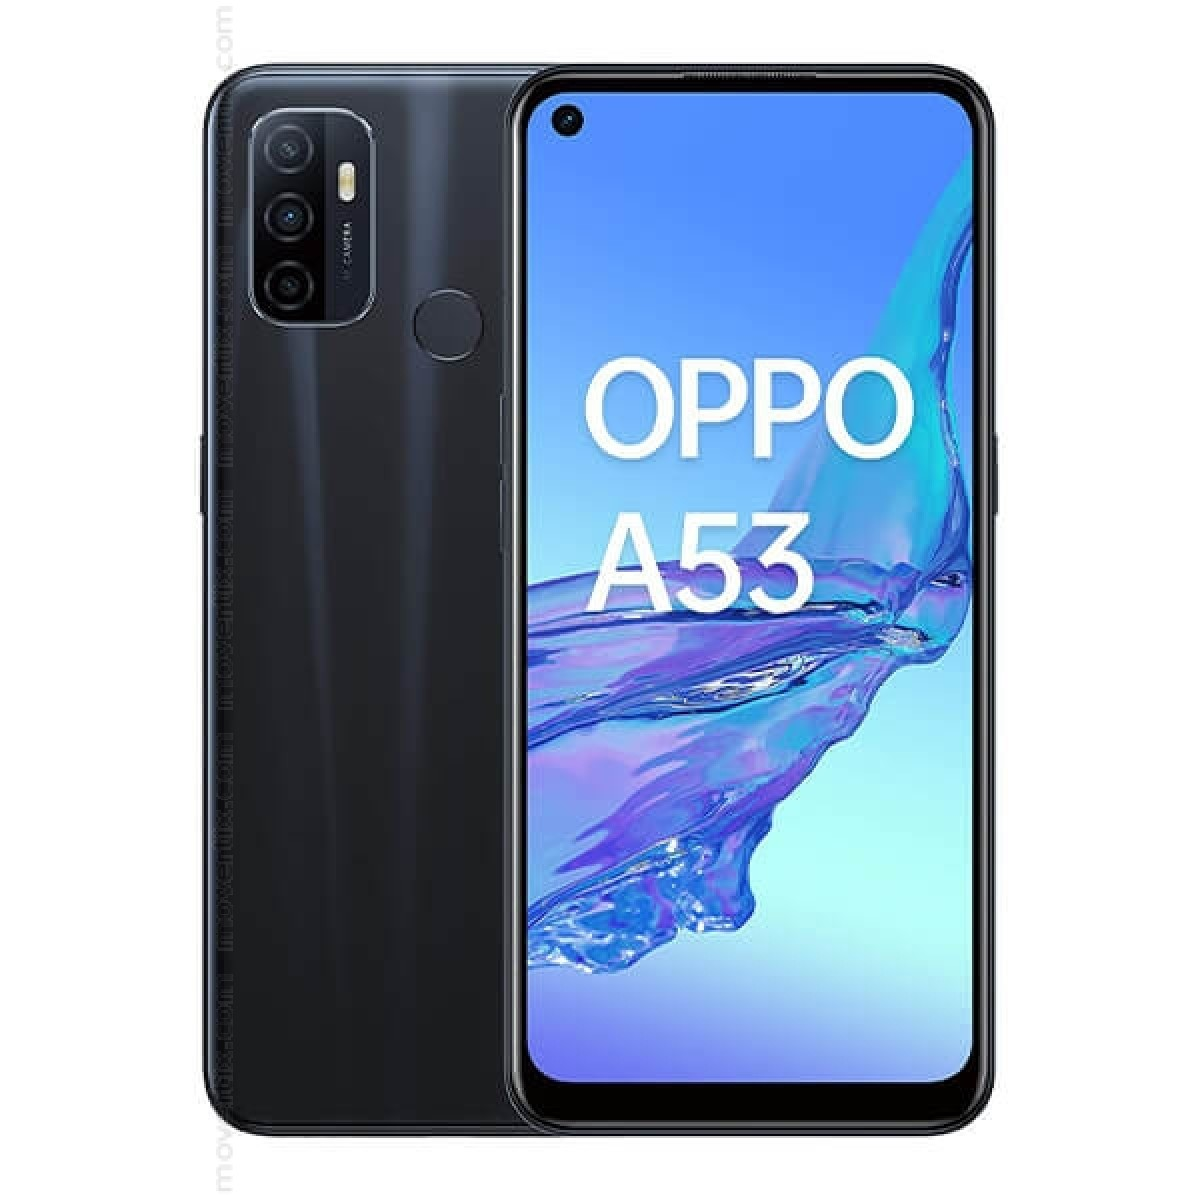 Oppo A53 Dual SIM Electric Black 64GB and 4GB RAM (6944284671102)    Movertix Mobile Phones Shop